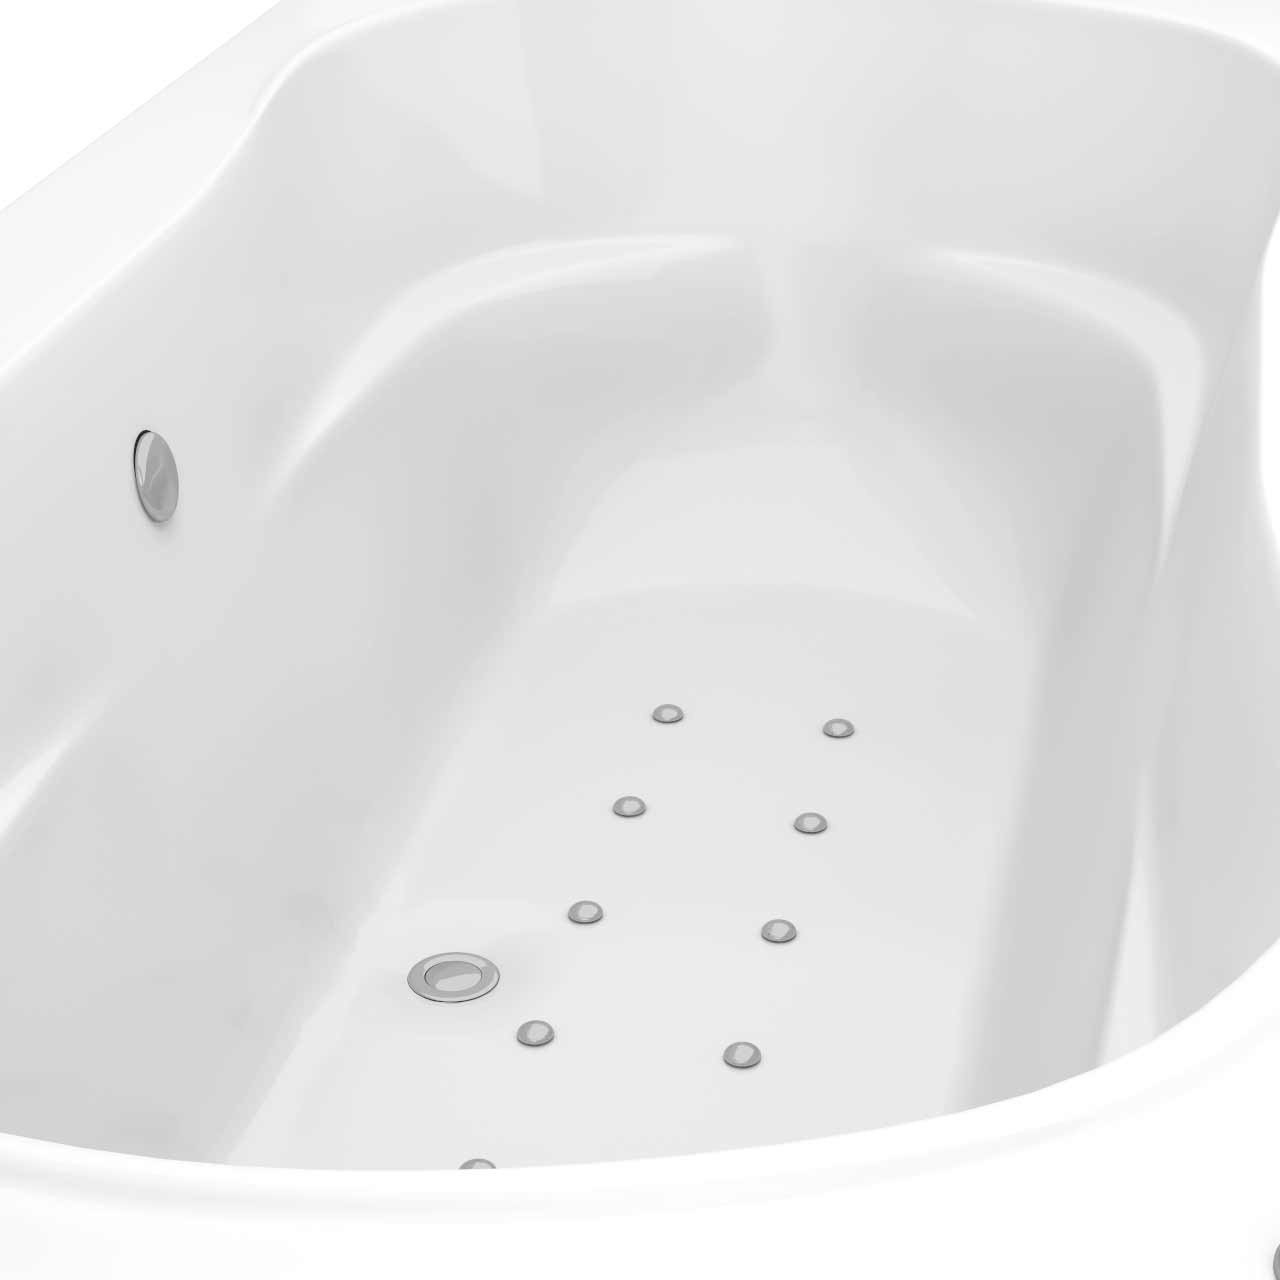 Strata Duo XL Centre Tap 12 Jet Easifit Spa Whirlpool Bath 1800x900mm